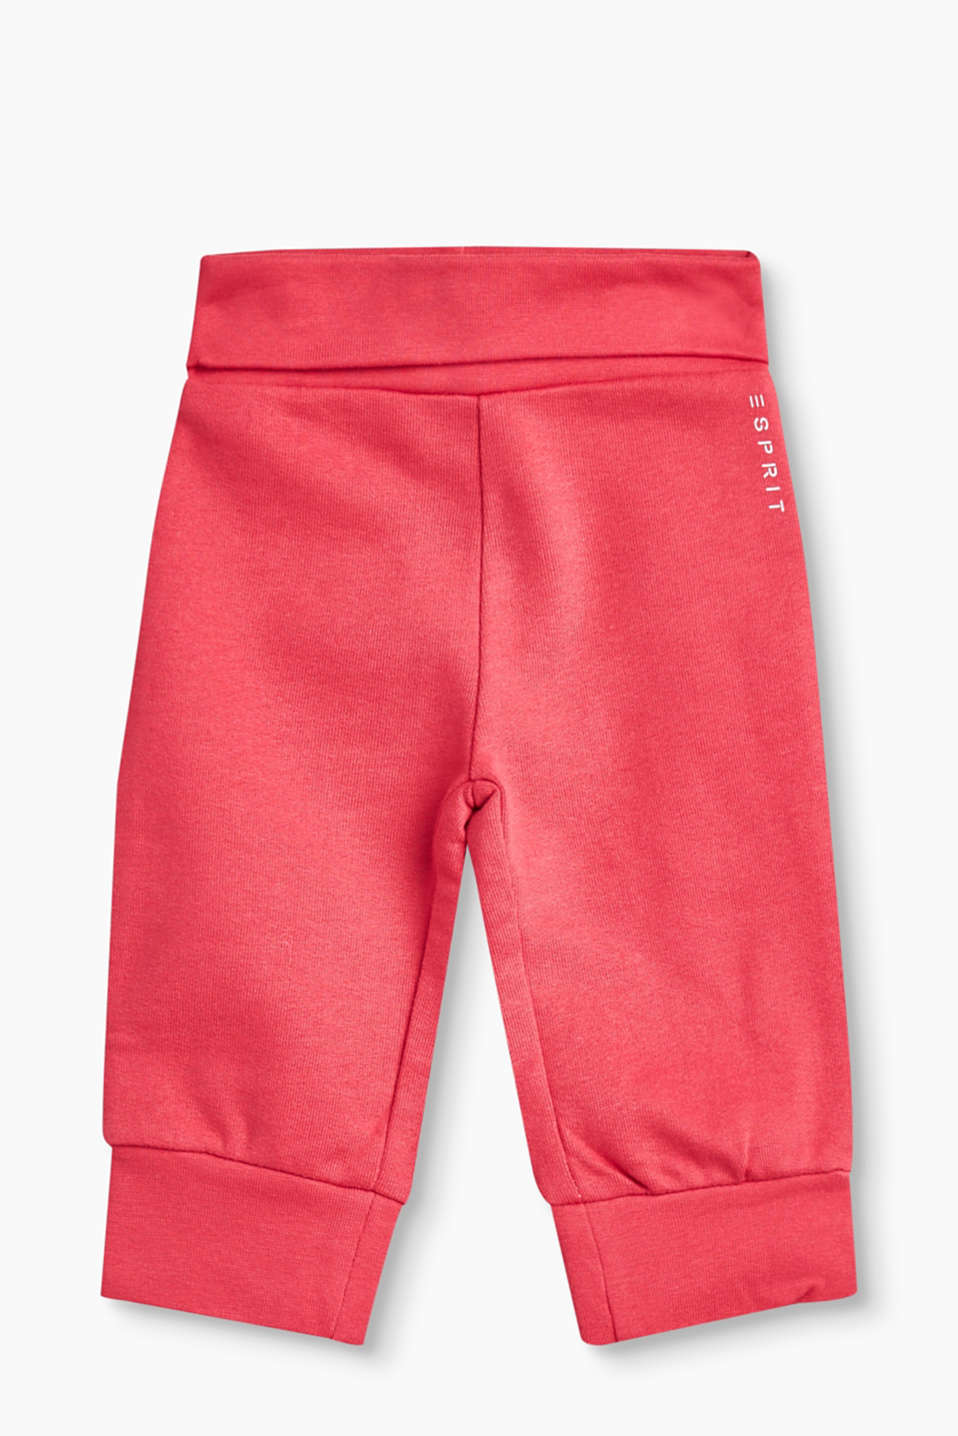 These basic tracksuit bottoms in soft blended cotton nestle snugly around the tummy.